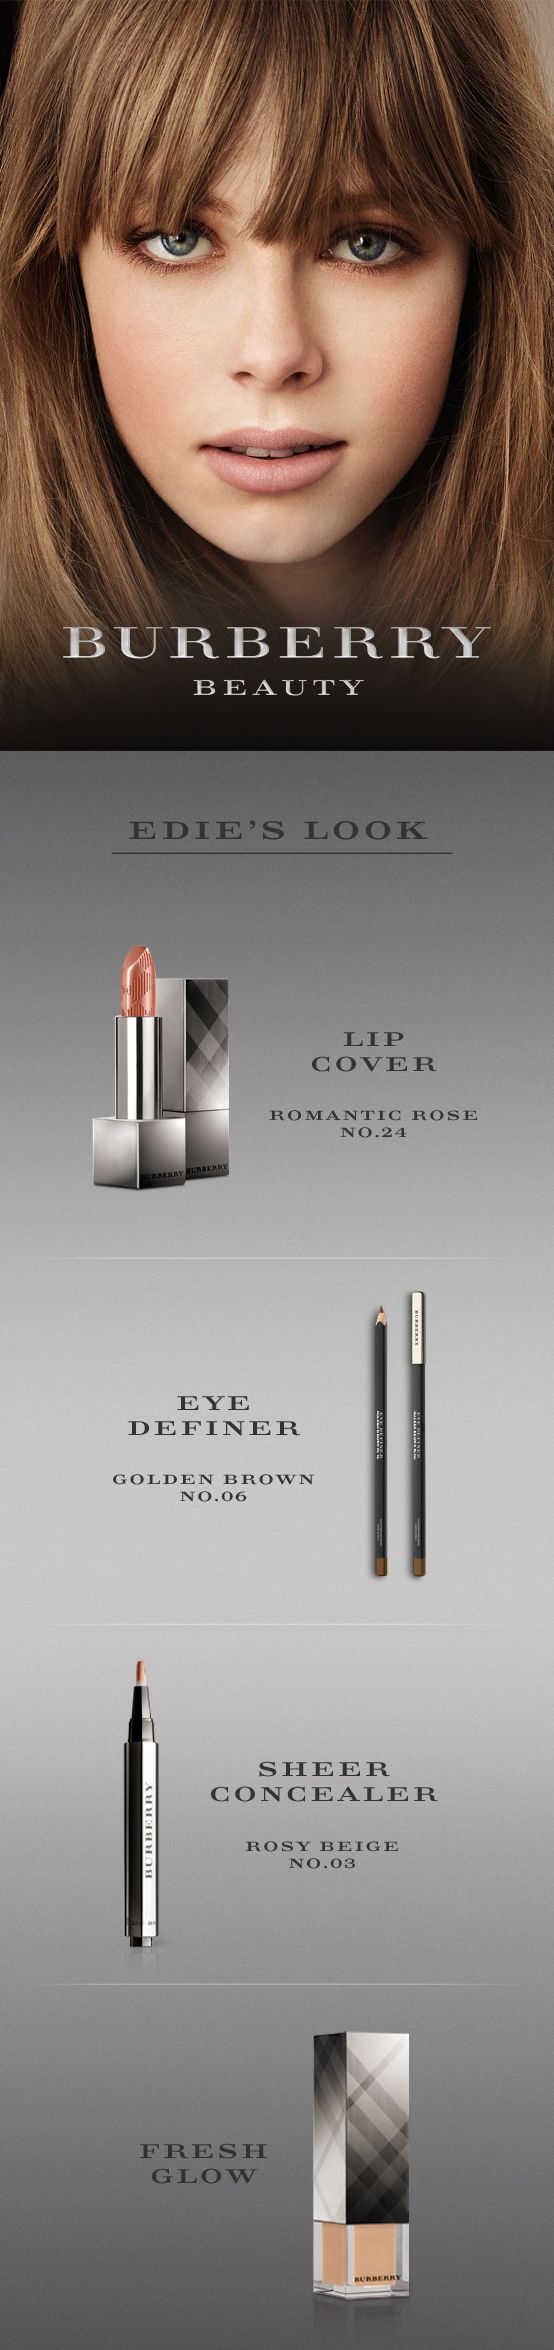 Burberry Beauty - Edie's Look